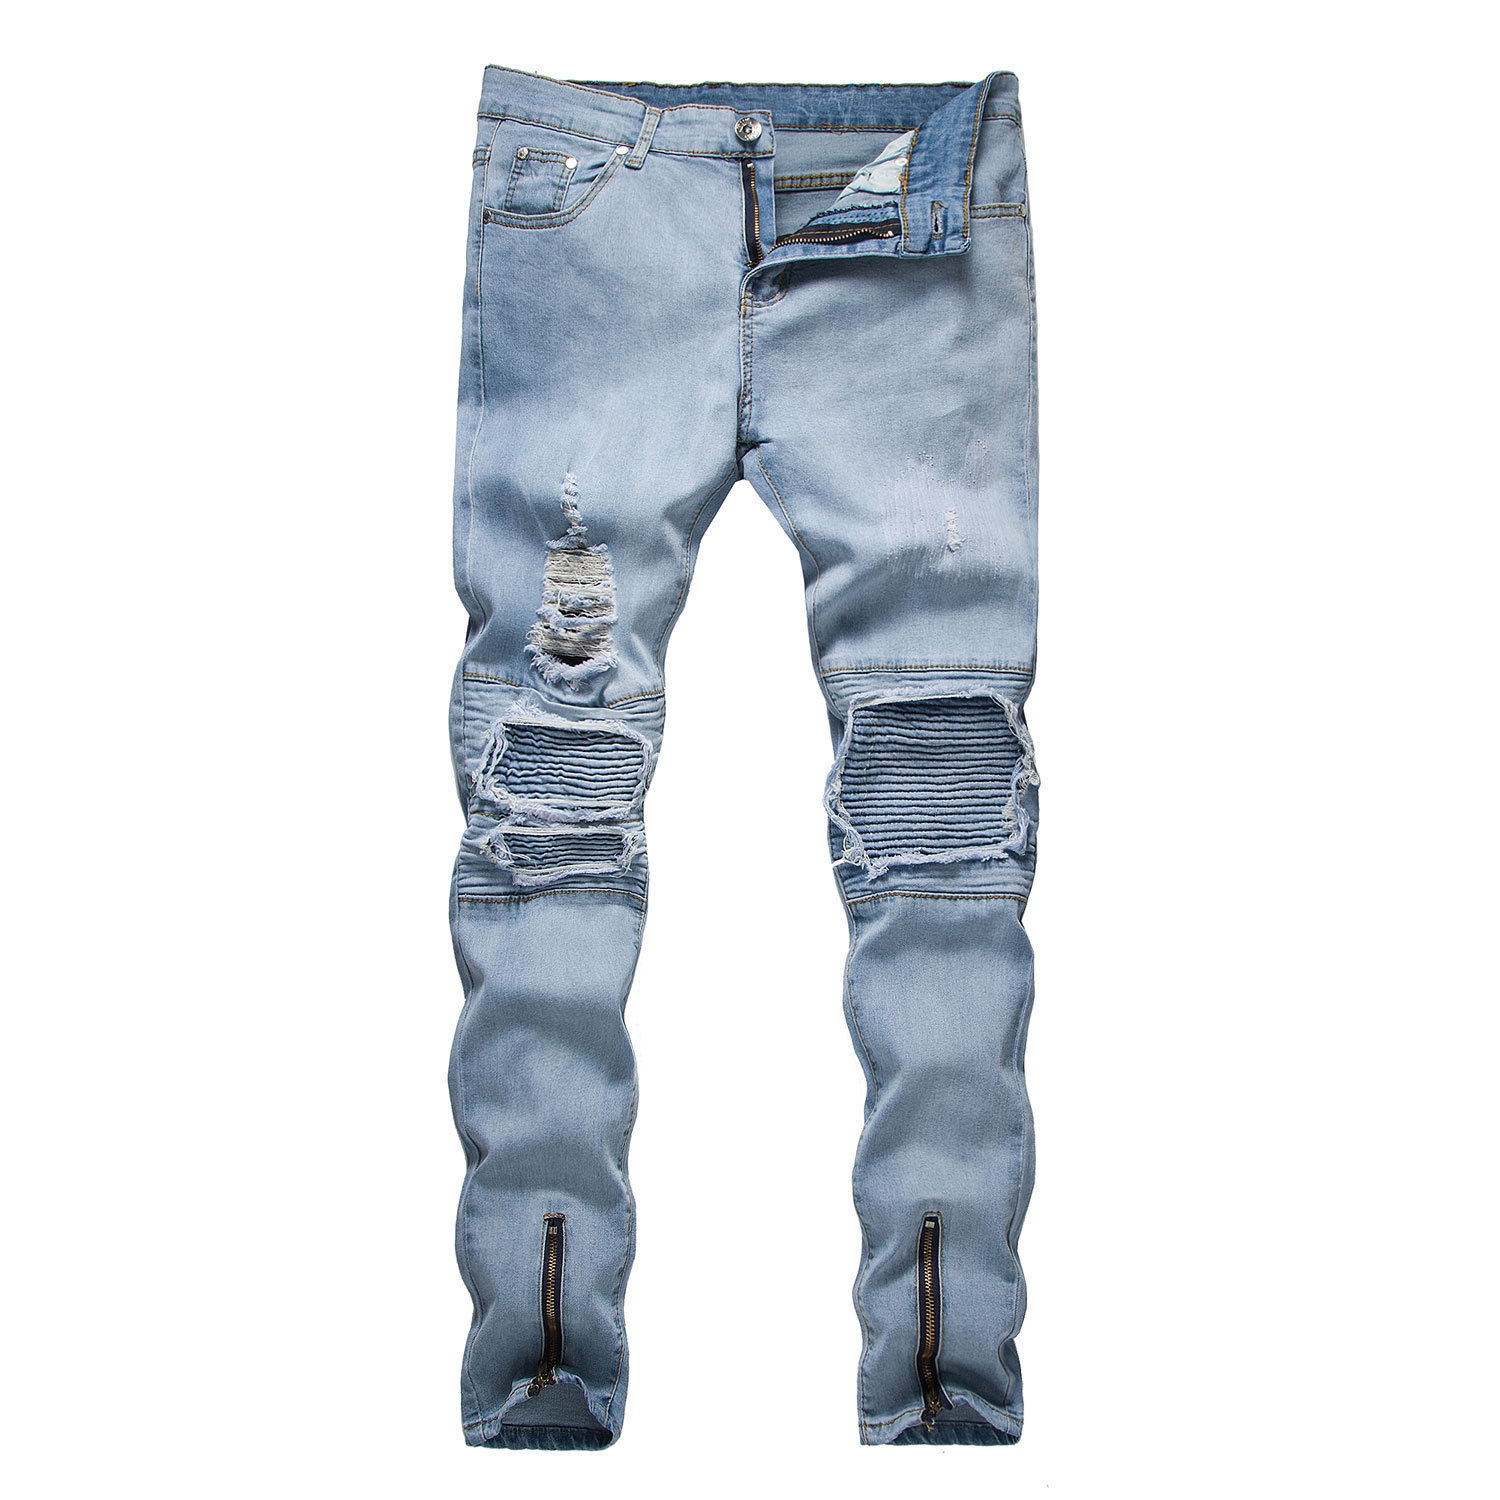 Mens jeans spring and summer new 2018 trend hole trousers high quality cotton breathable fashion jeans